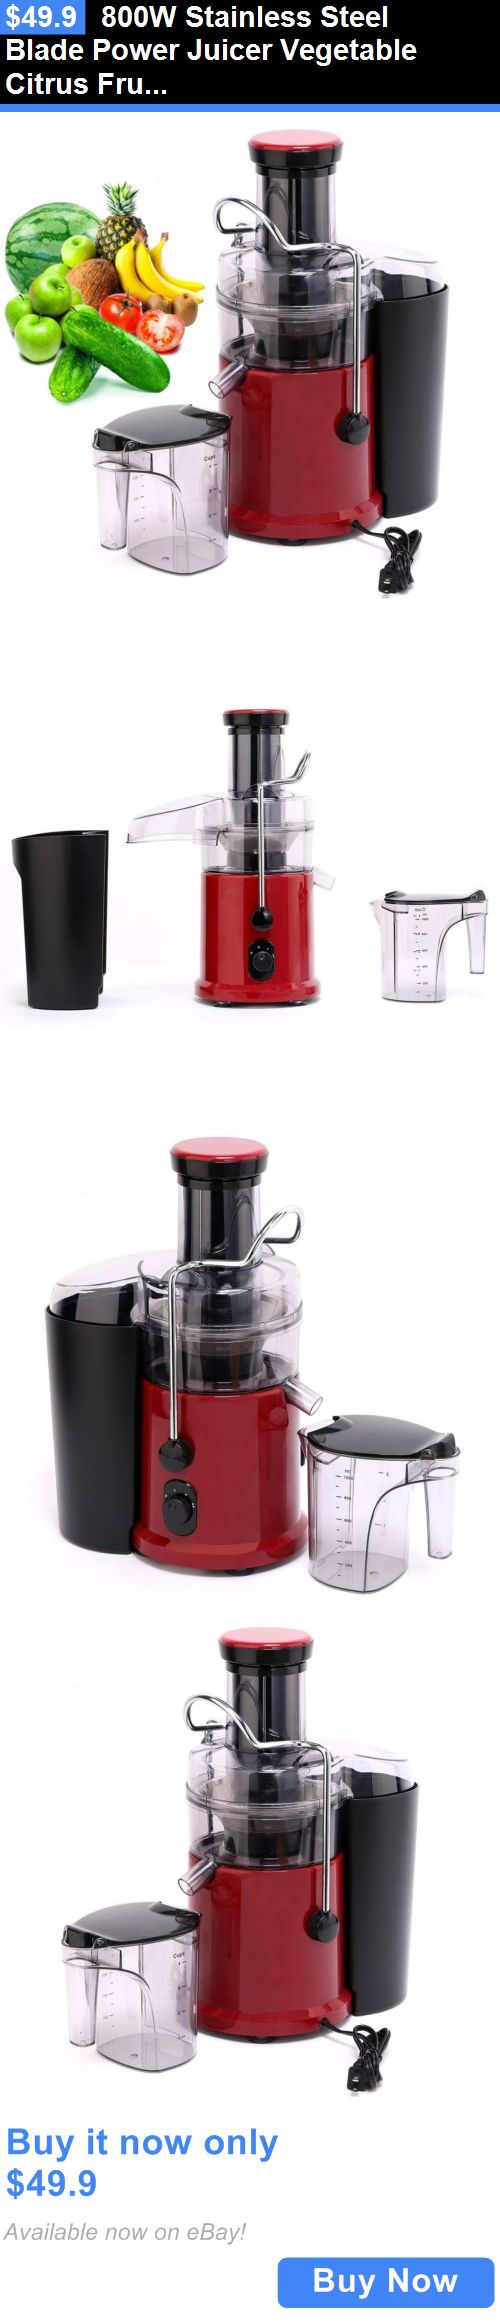 Small Kitchen Appliances: 800W Stainless Steel Blade Power Juicer Vegetable Citrus Fruit Juice Extractor BUY IT NOW ONLY: $49.9